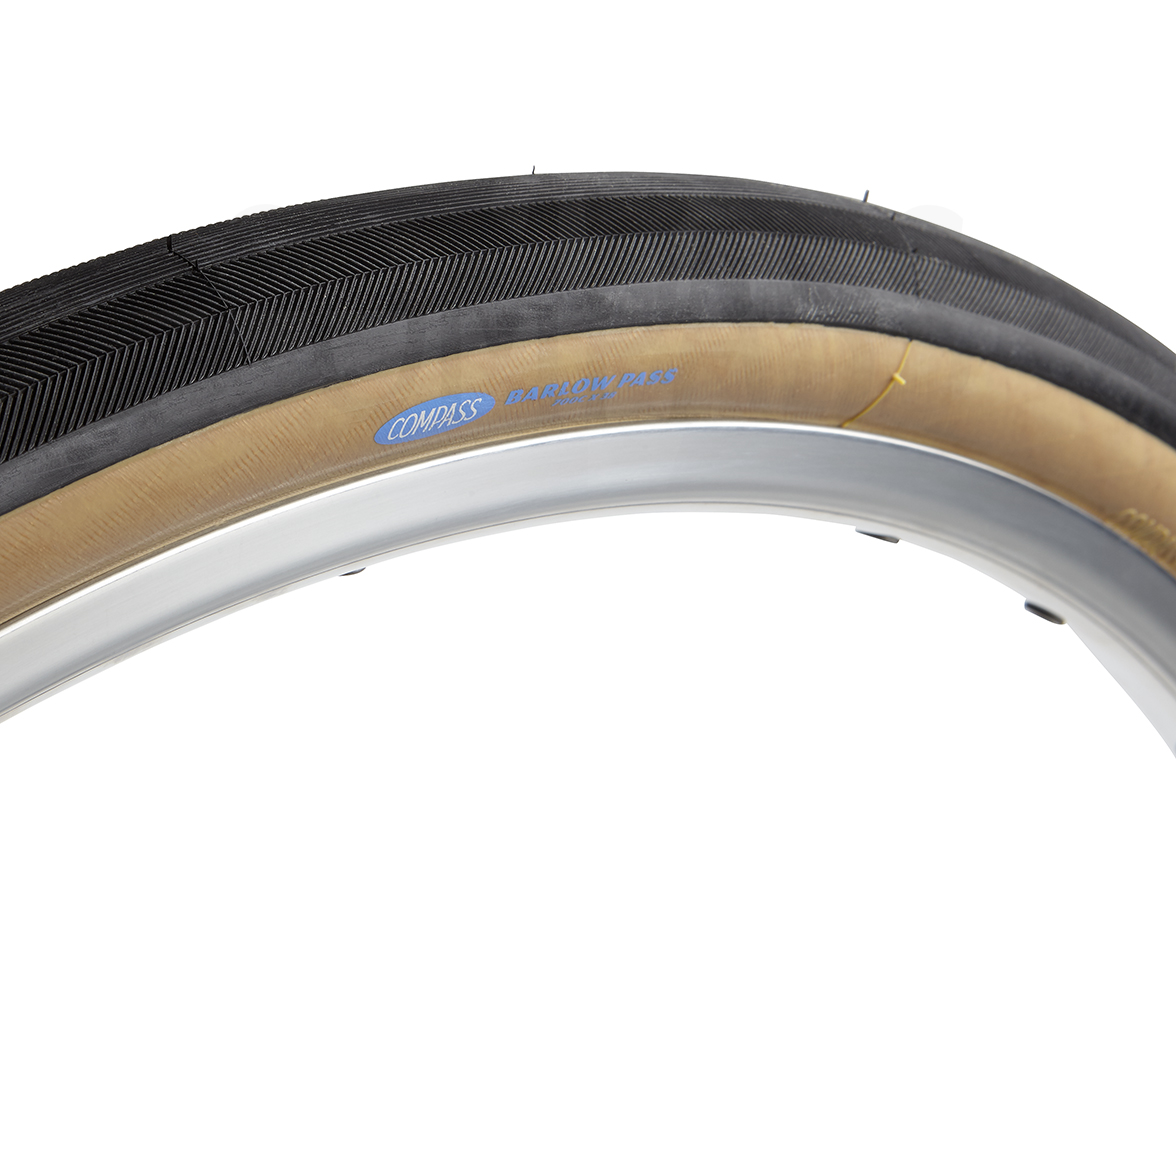 Compass tires has the Barlow Pass to keep things nice and comfortable. Measuring 700 X 38mm.